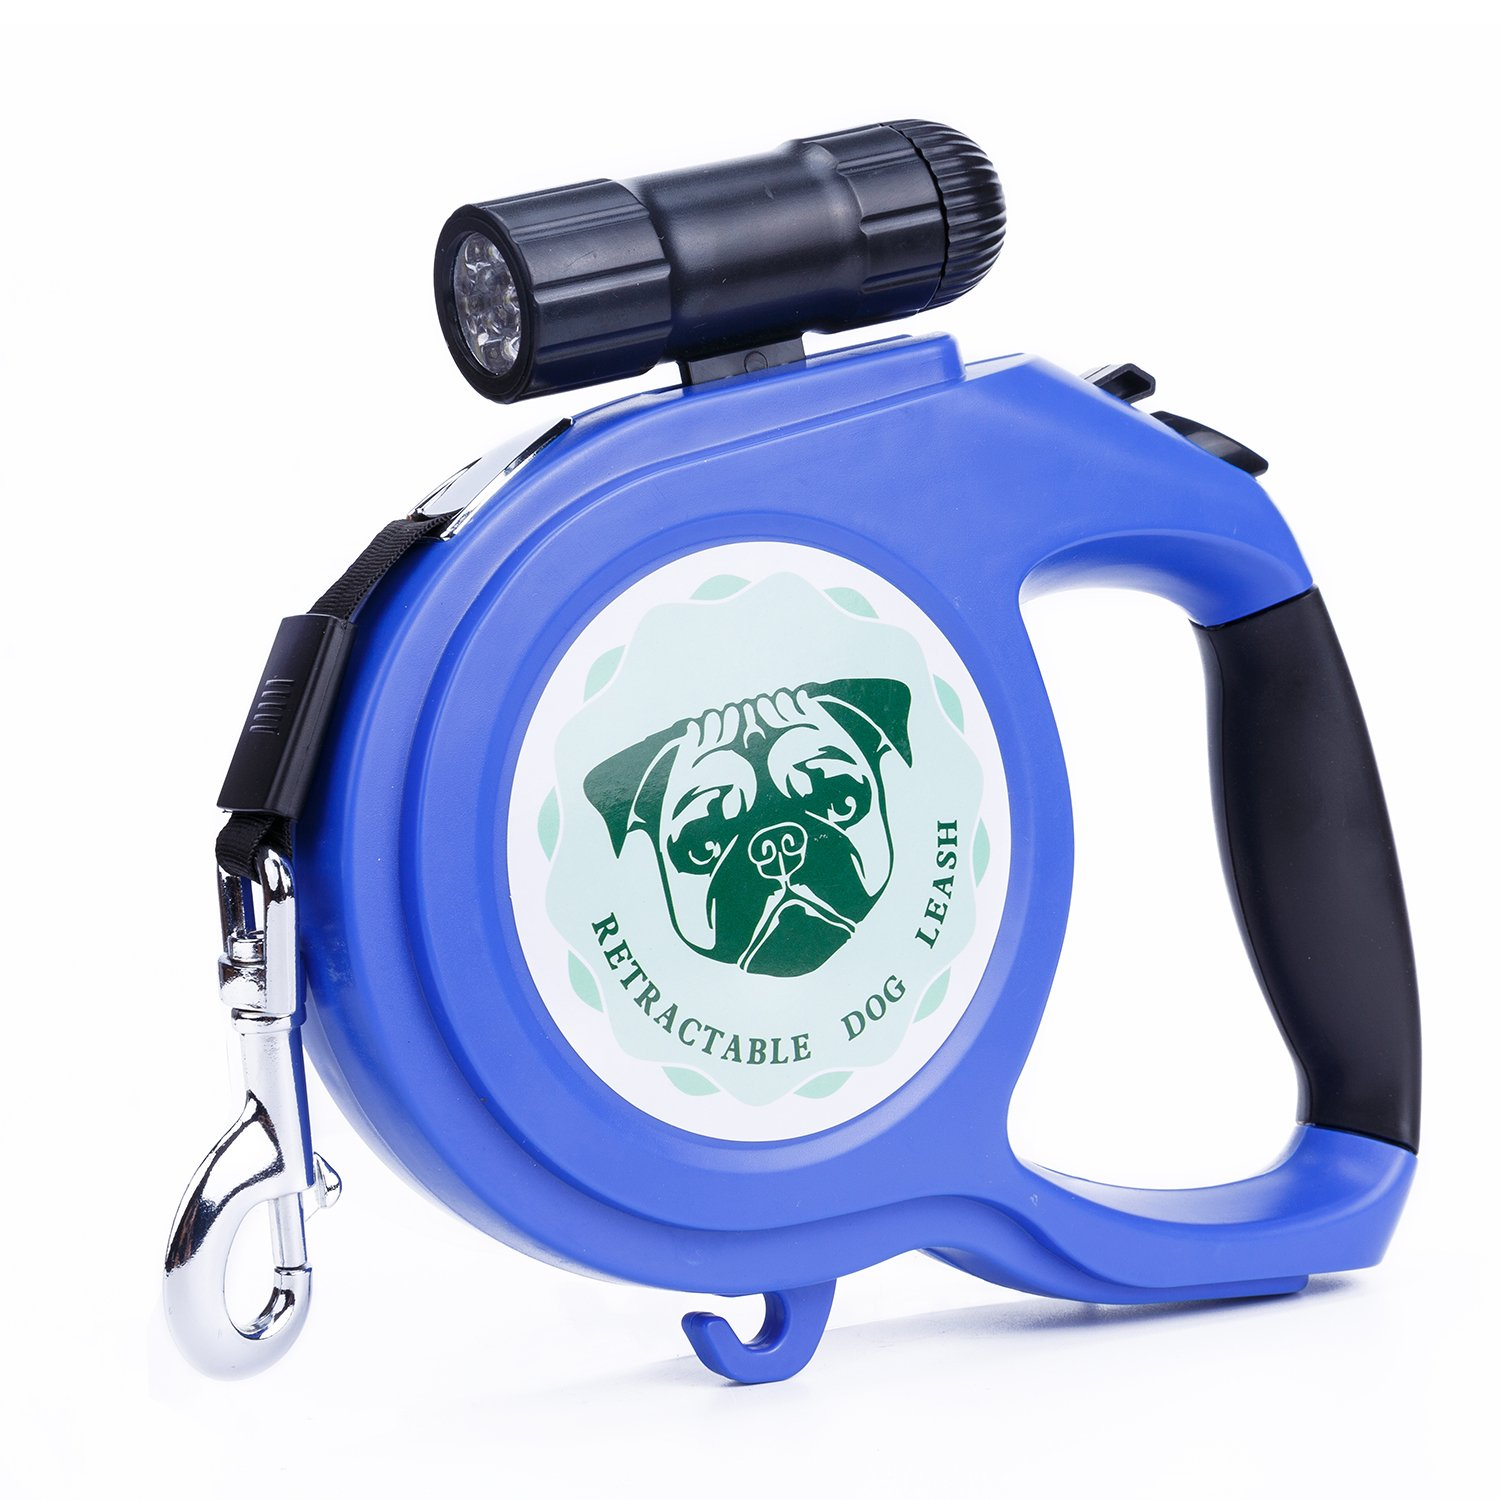 Retractable Dog Leash, 26ft Pet Walking Leash with 9 LED Detachable Flashlight for Medium Large Dog up to 100lbs, with Hand Grip One Button Brake & Lock and Hook(bluee)